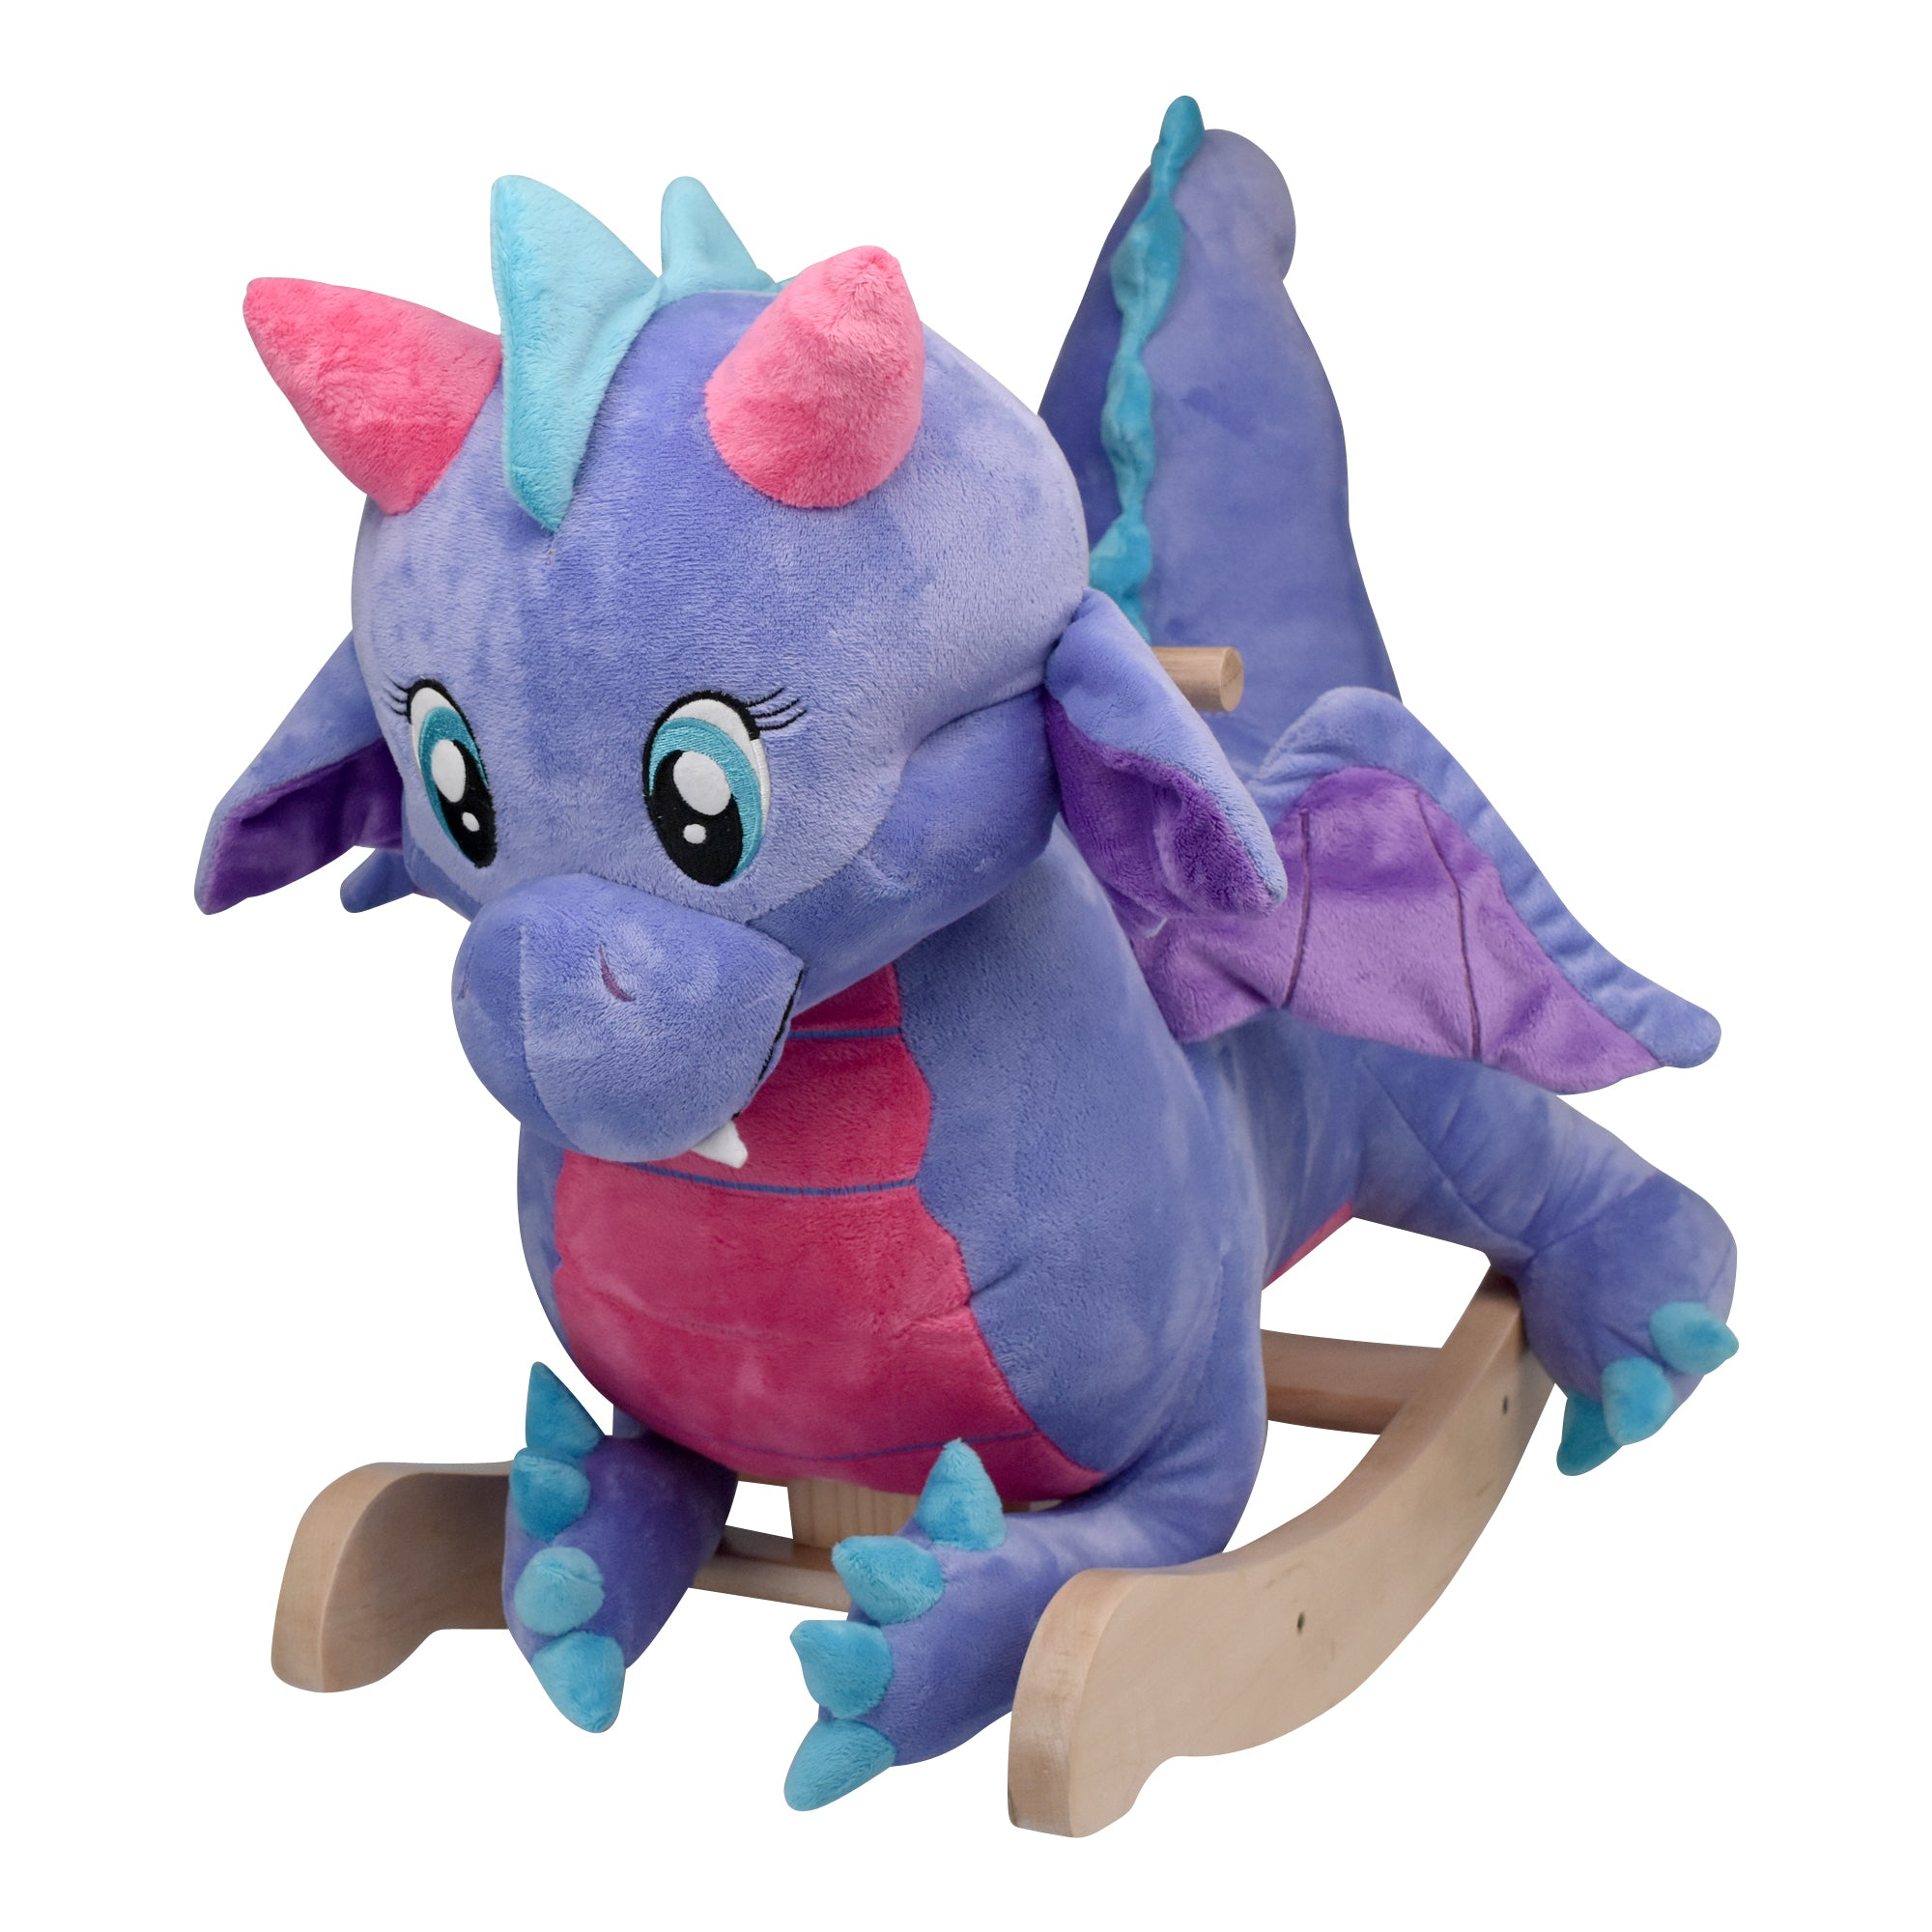 Puff the Periwinkle Dragon Classic rockAbye